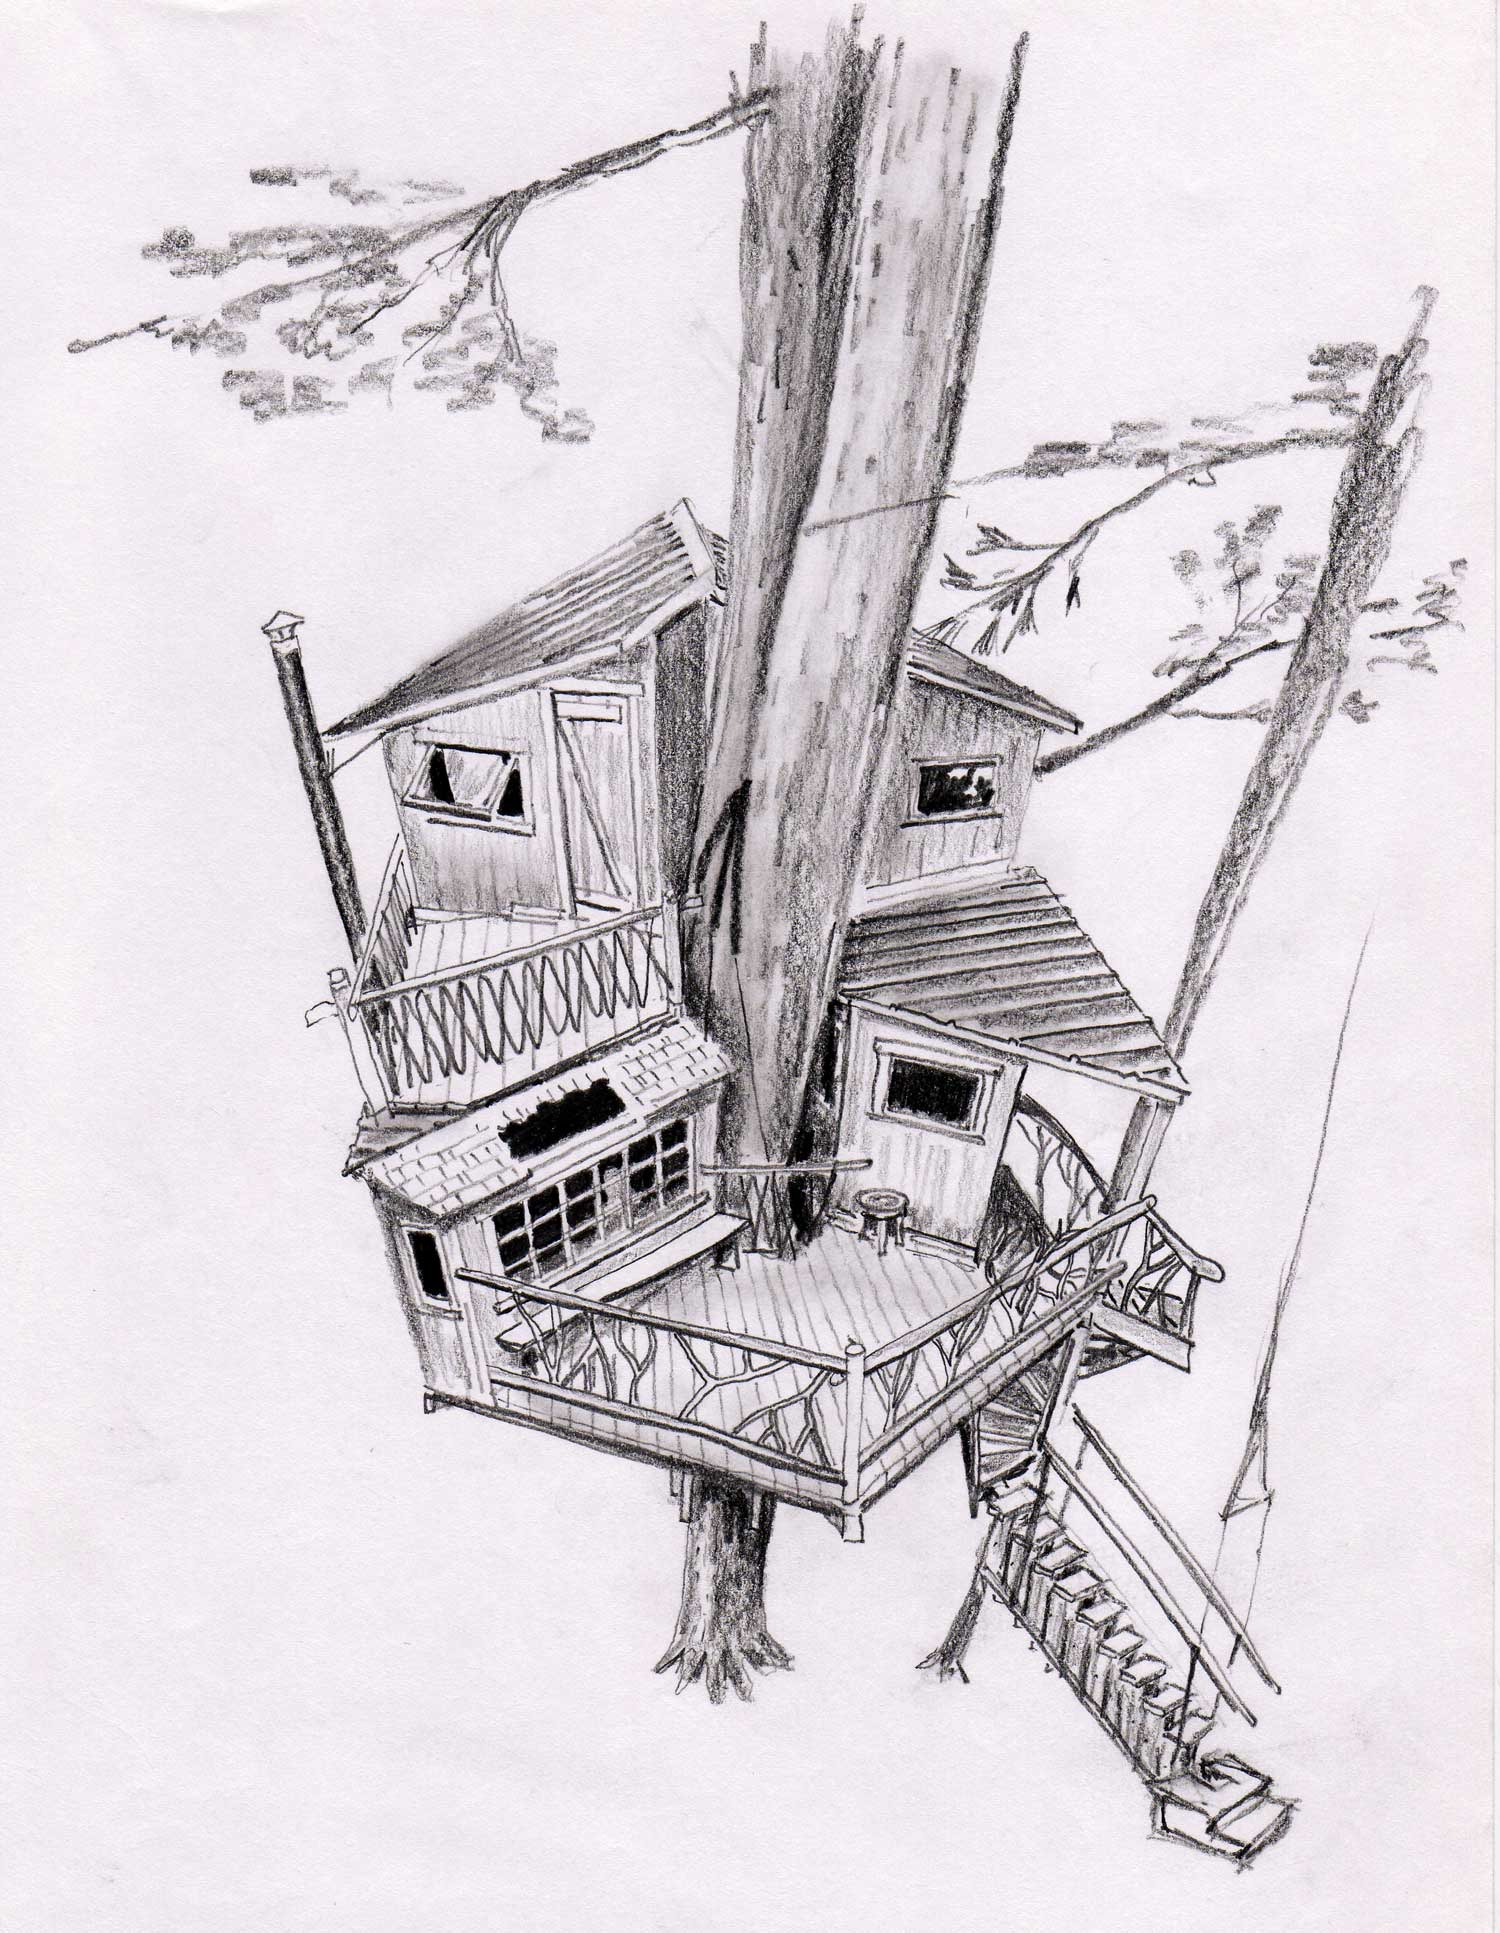 architecture-beautiful-tree-house-sketch-with-elegant-patio-and-unique-roof-top-design-also-staircase-cool-tree-house-designs